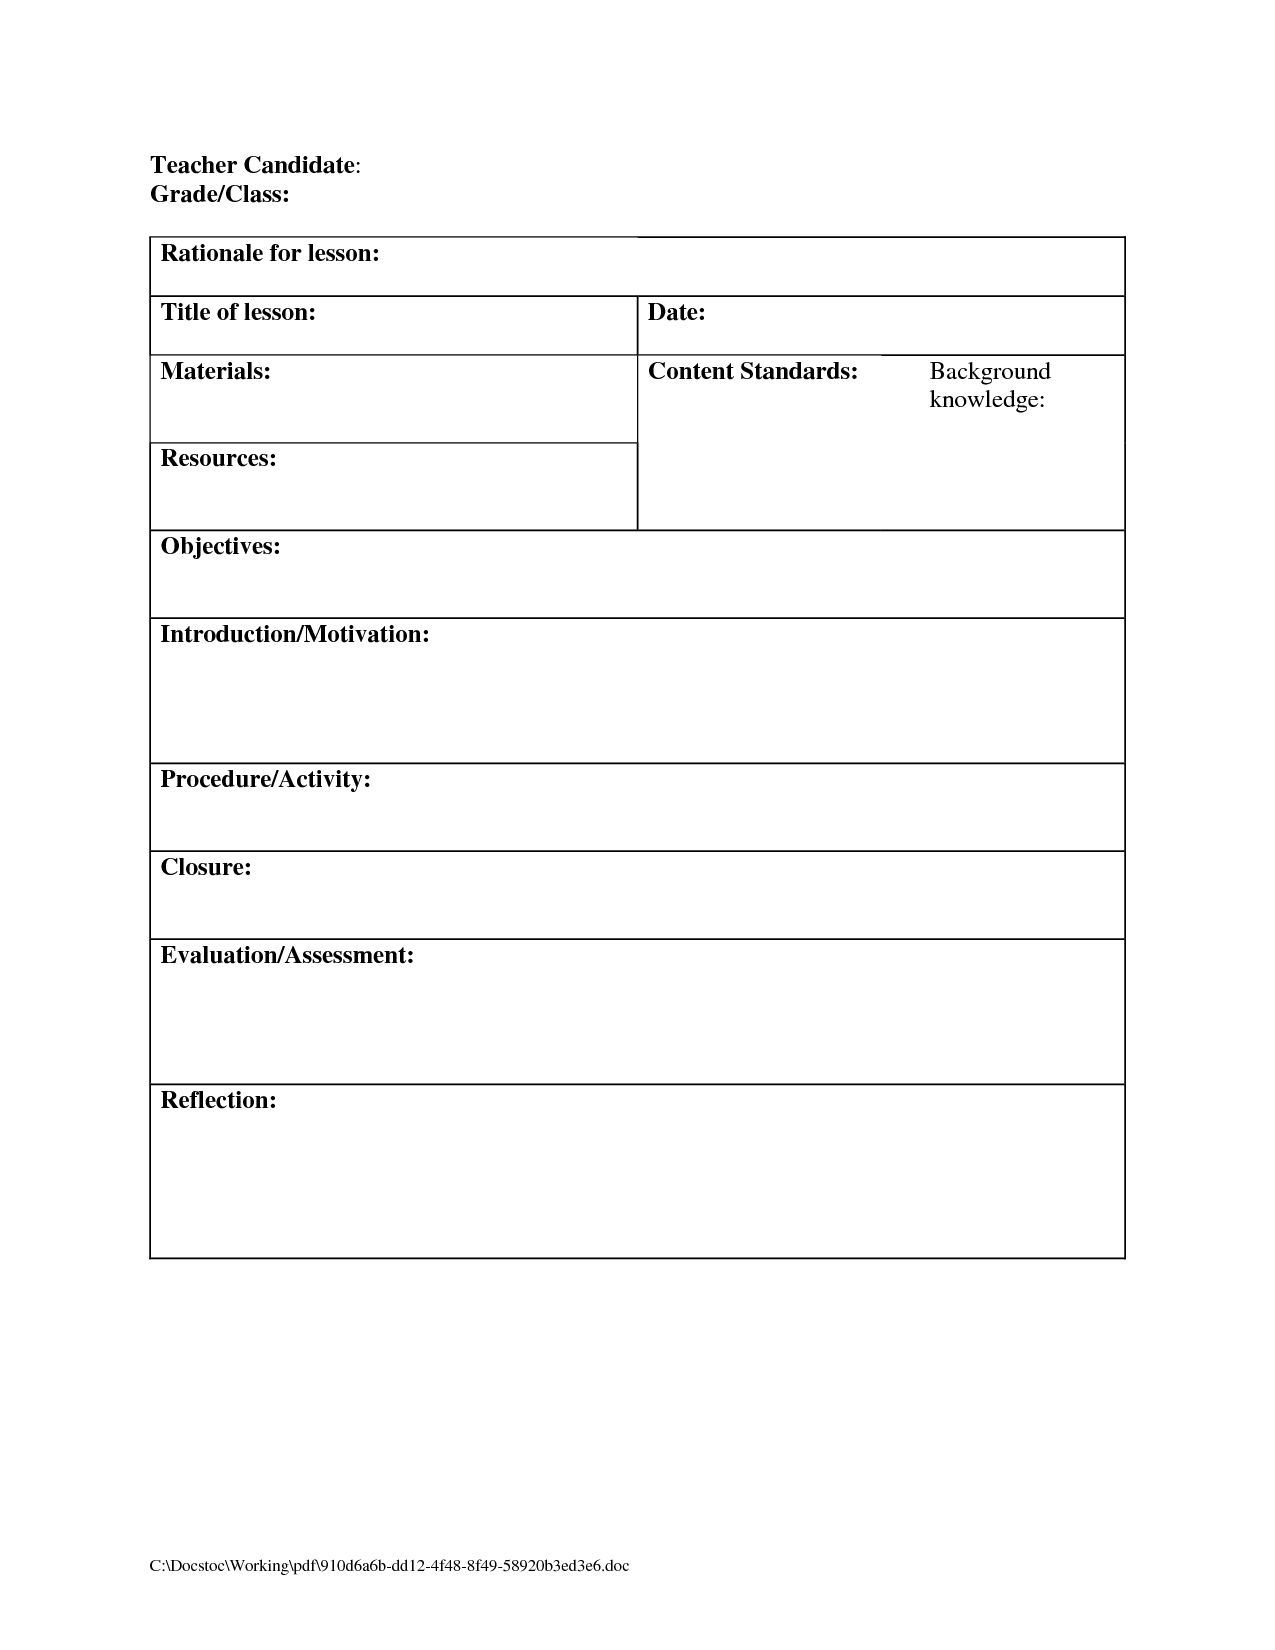 Printable Blank Lesson Plans Form For Counselors | Blank Lesson Plan in Catholic Daily Planner Template Printable Free